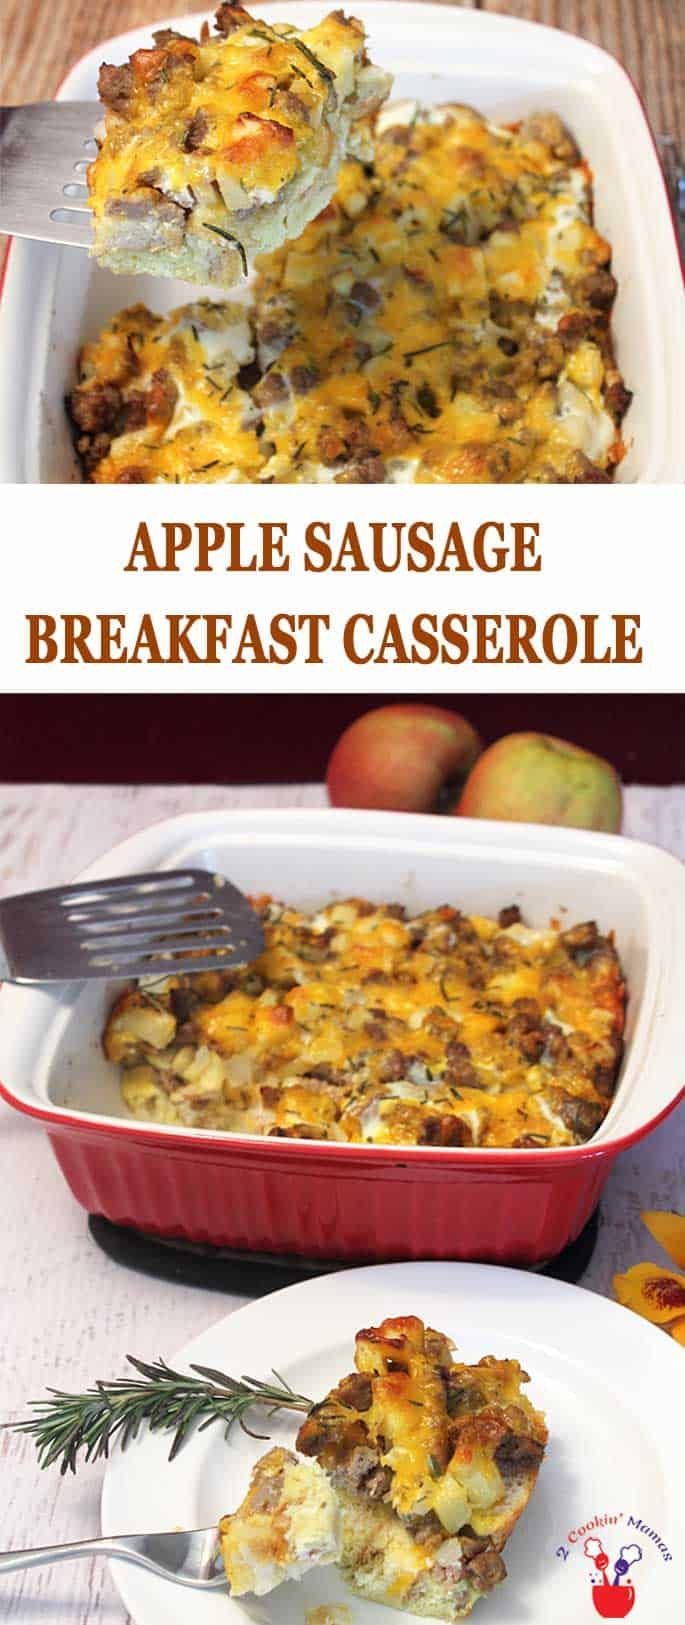 Sausage Apple Breakfast Casserole is an easy throw together casserole for breakfast, complete with sausage, eggs, cheese and some yummy french or sour dough bread. Perfect for holiday guests or make it ahead, freeze it and it's perfect for quick on-the-go breakfasts. #breakfast #sausage #eggs #casserole